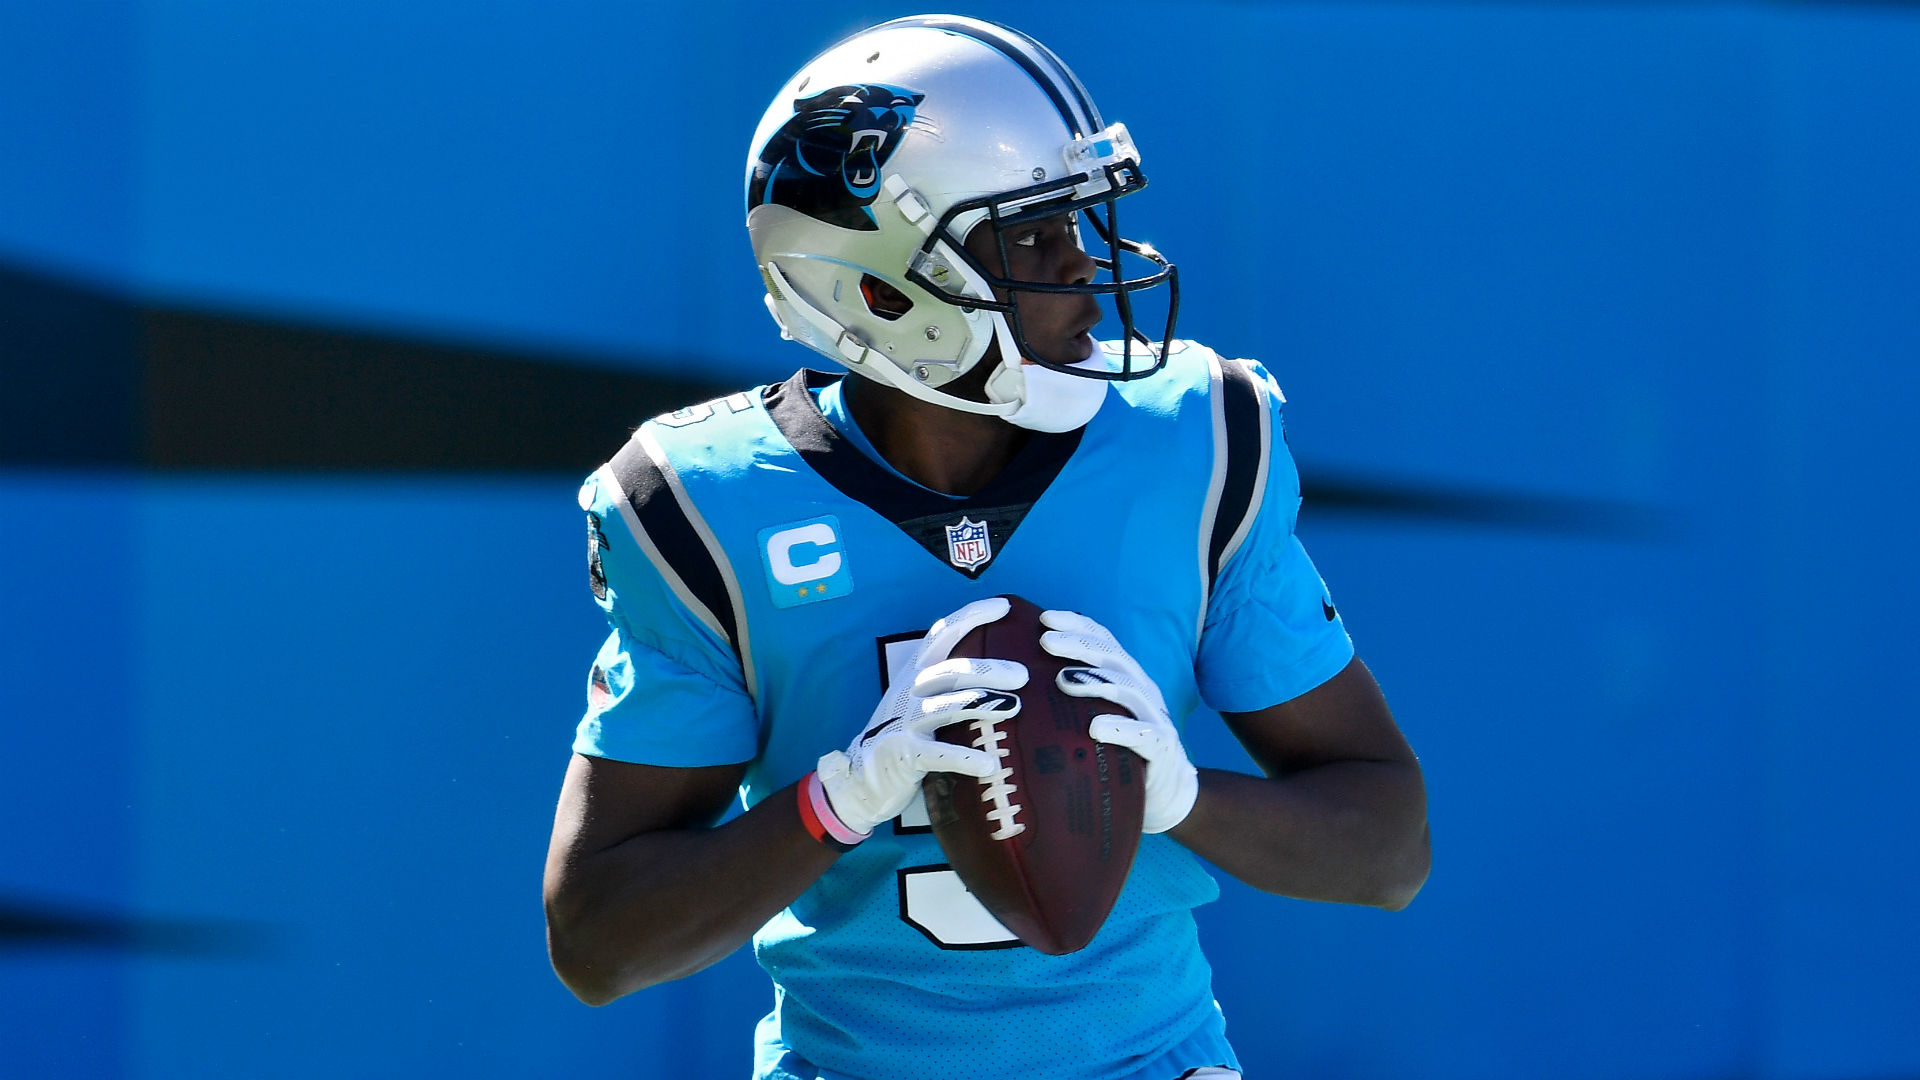 Why Teddy 'Two Gloves' Bridgewater wears gloves while playing QB for Panthers